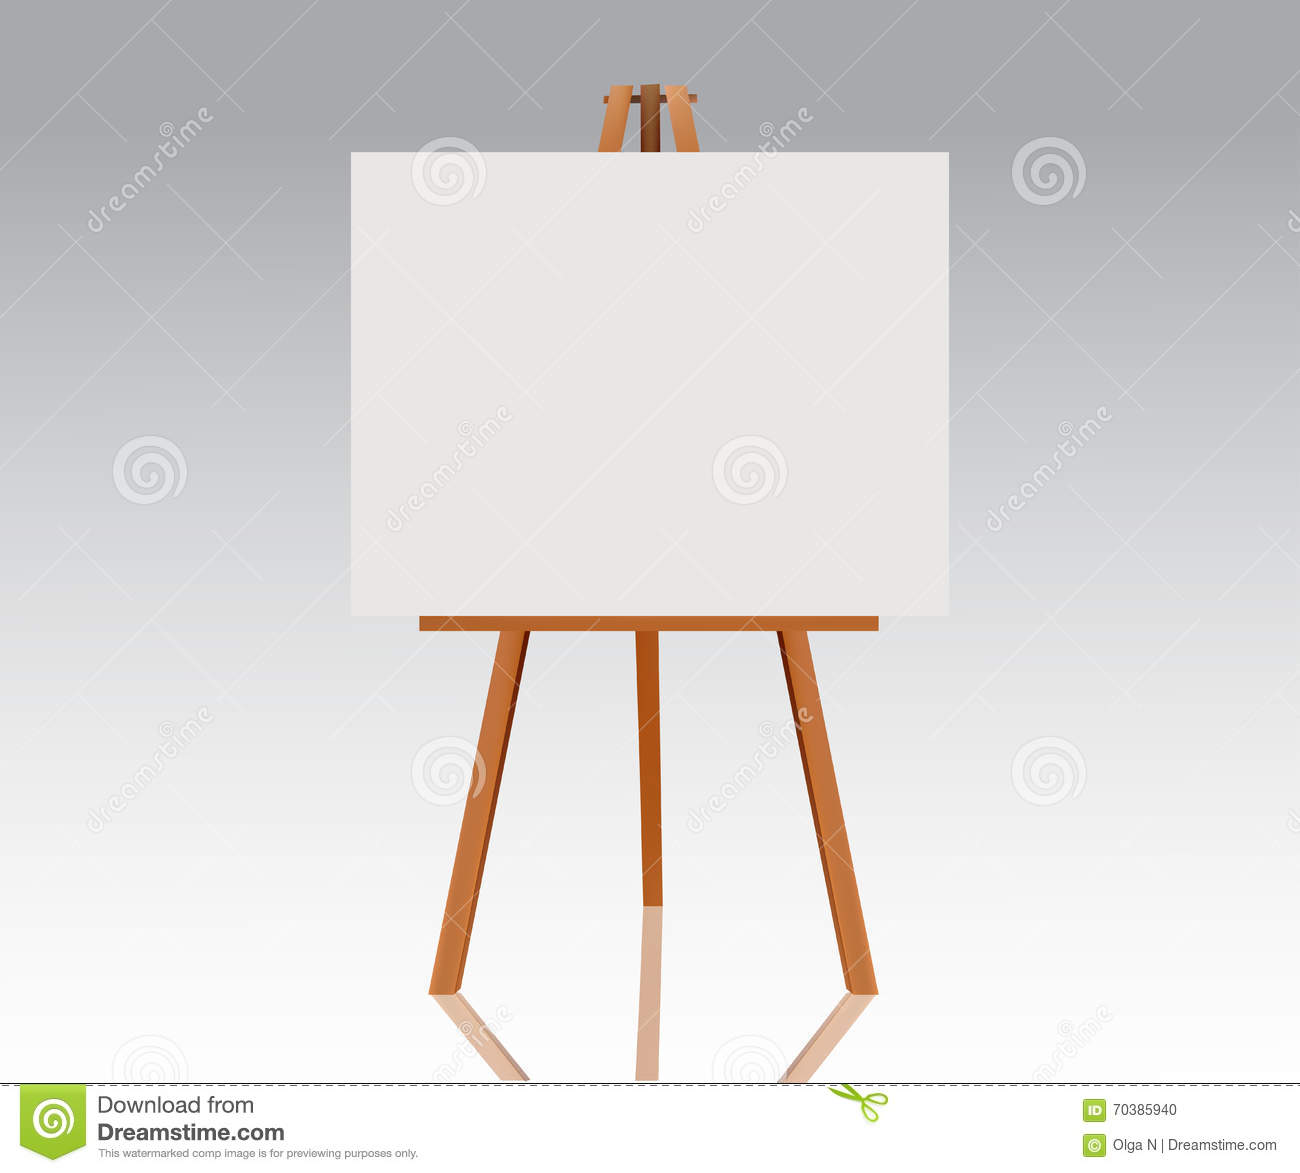 Blank Space: Wooden Easel With Empty Canvas. Blank Space Ready For Your